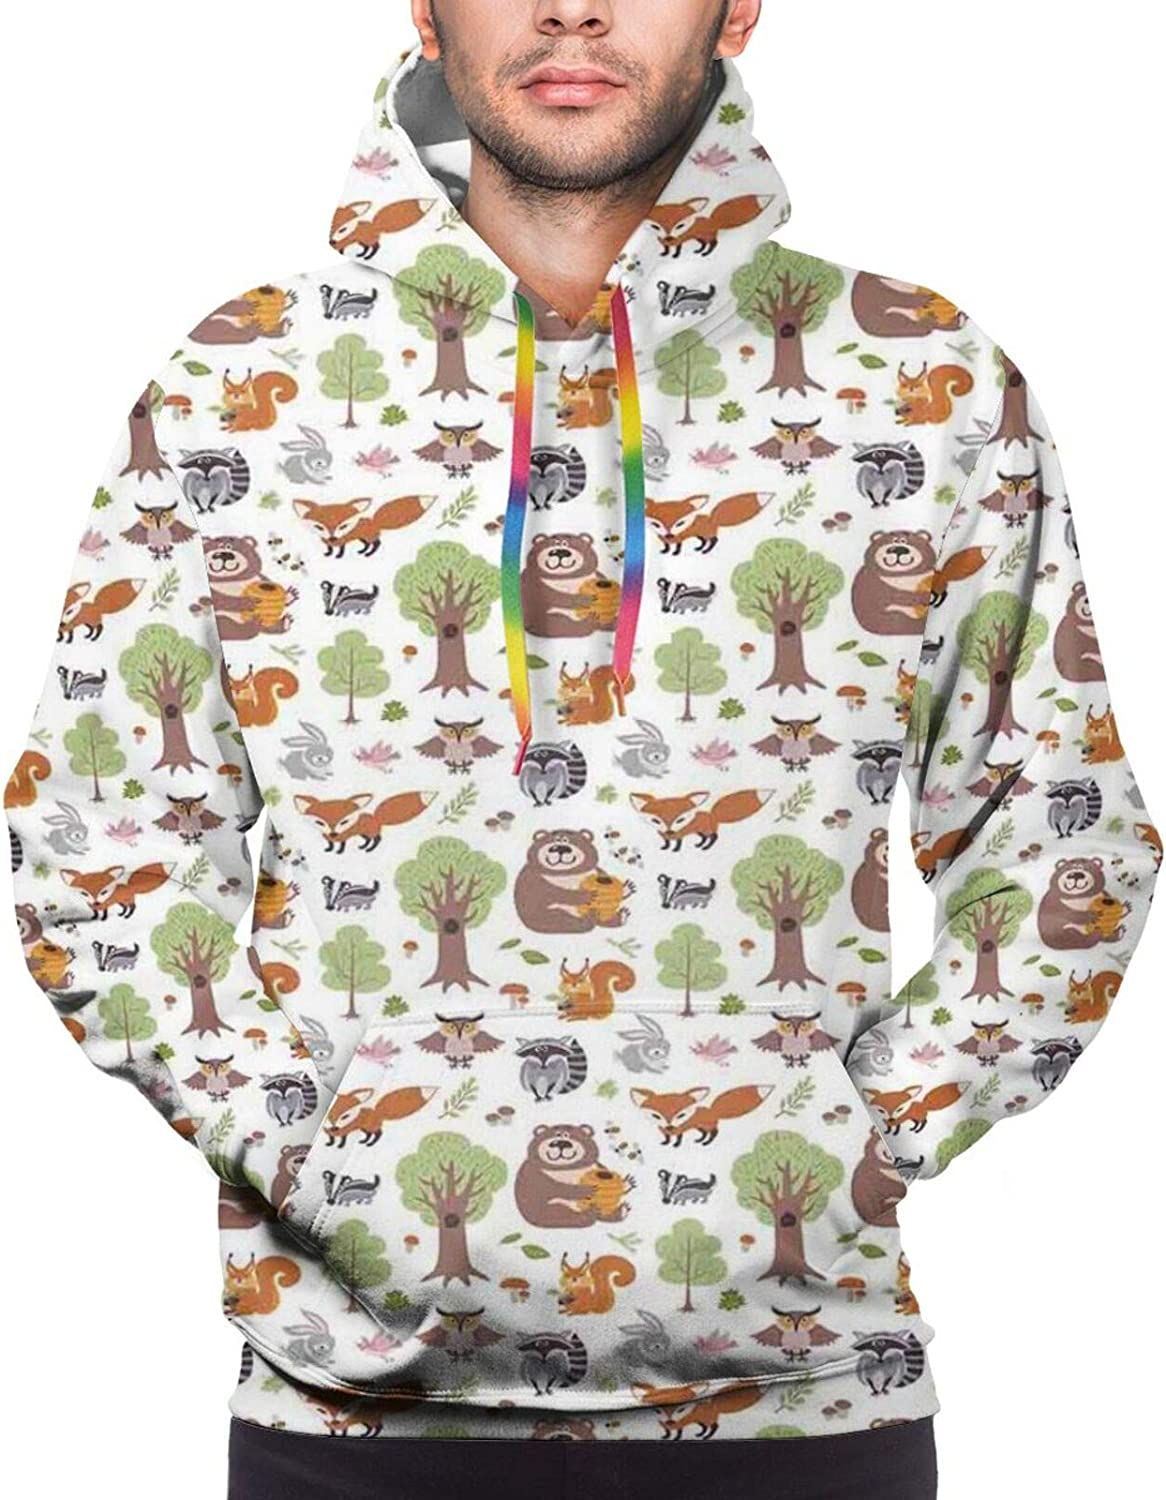 Men's Hoodies Sweatshirts,Doodle Woodland Animals of Wild Nature Composition Colorful Leaves Birds and Berries